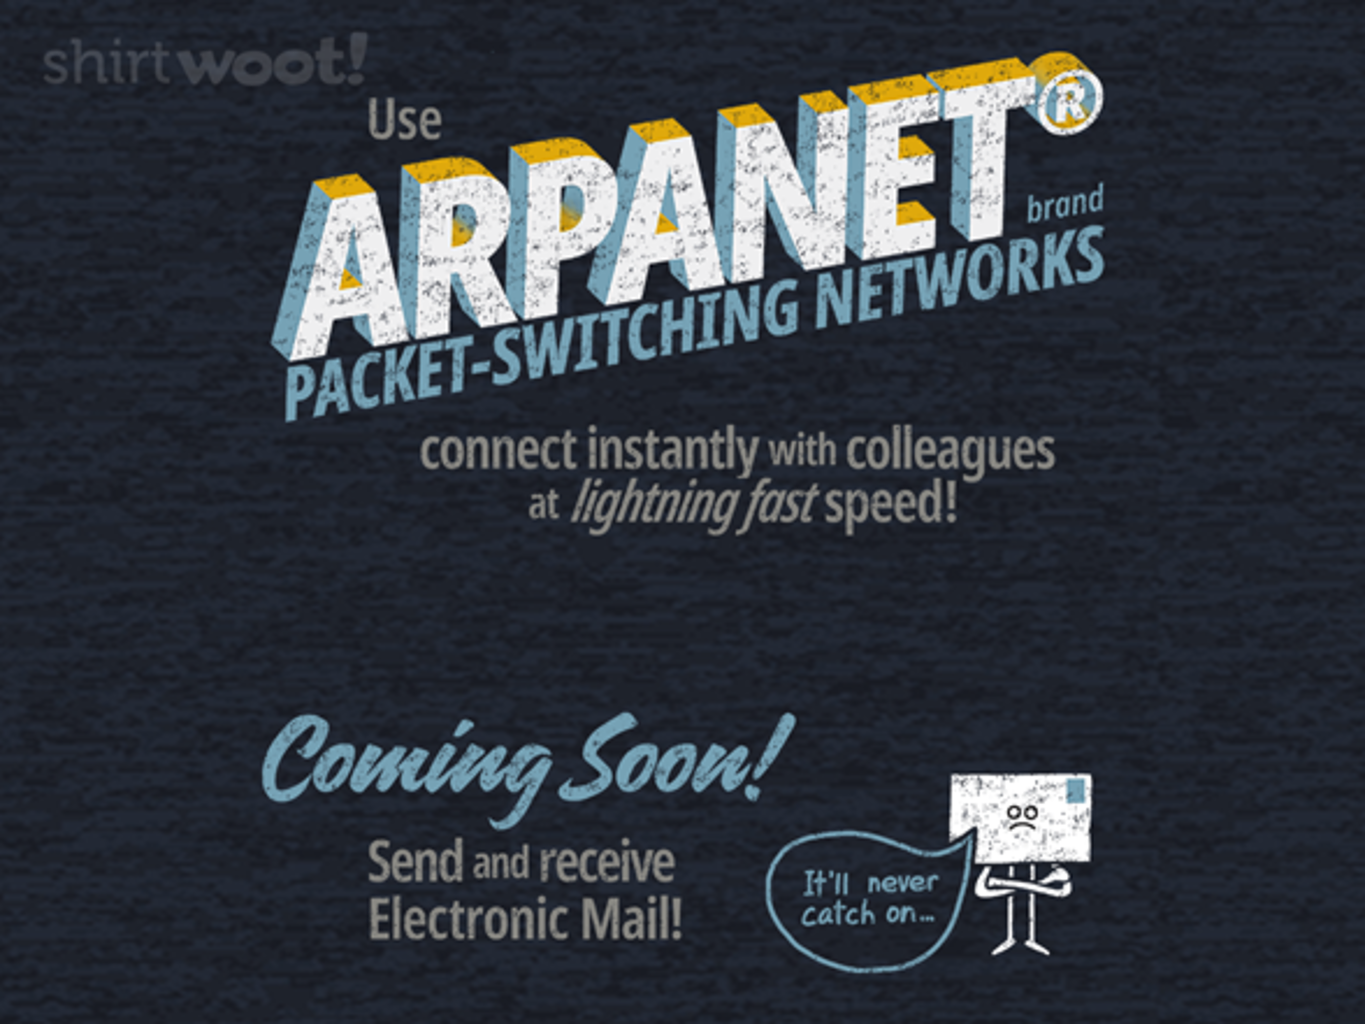 Woot!: Welcome to the ARPANET